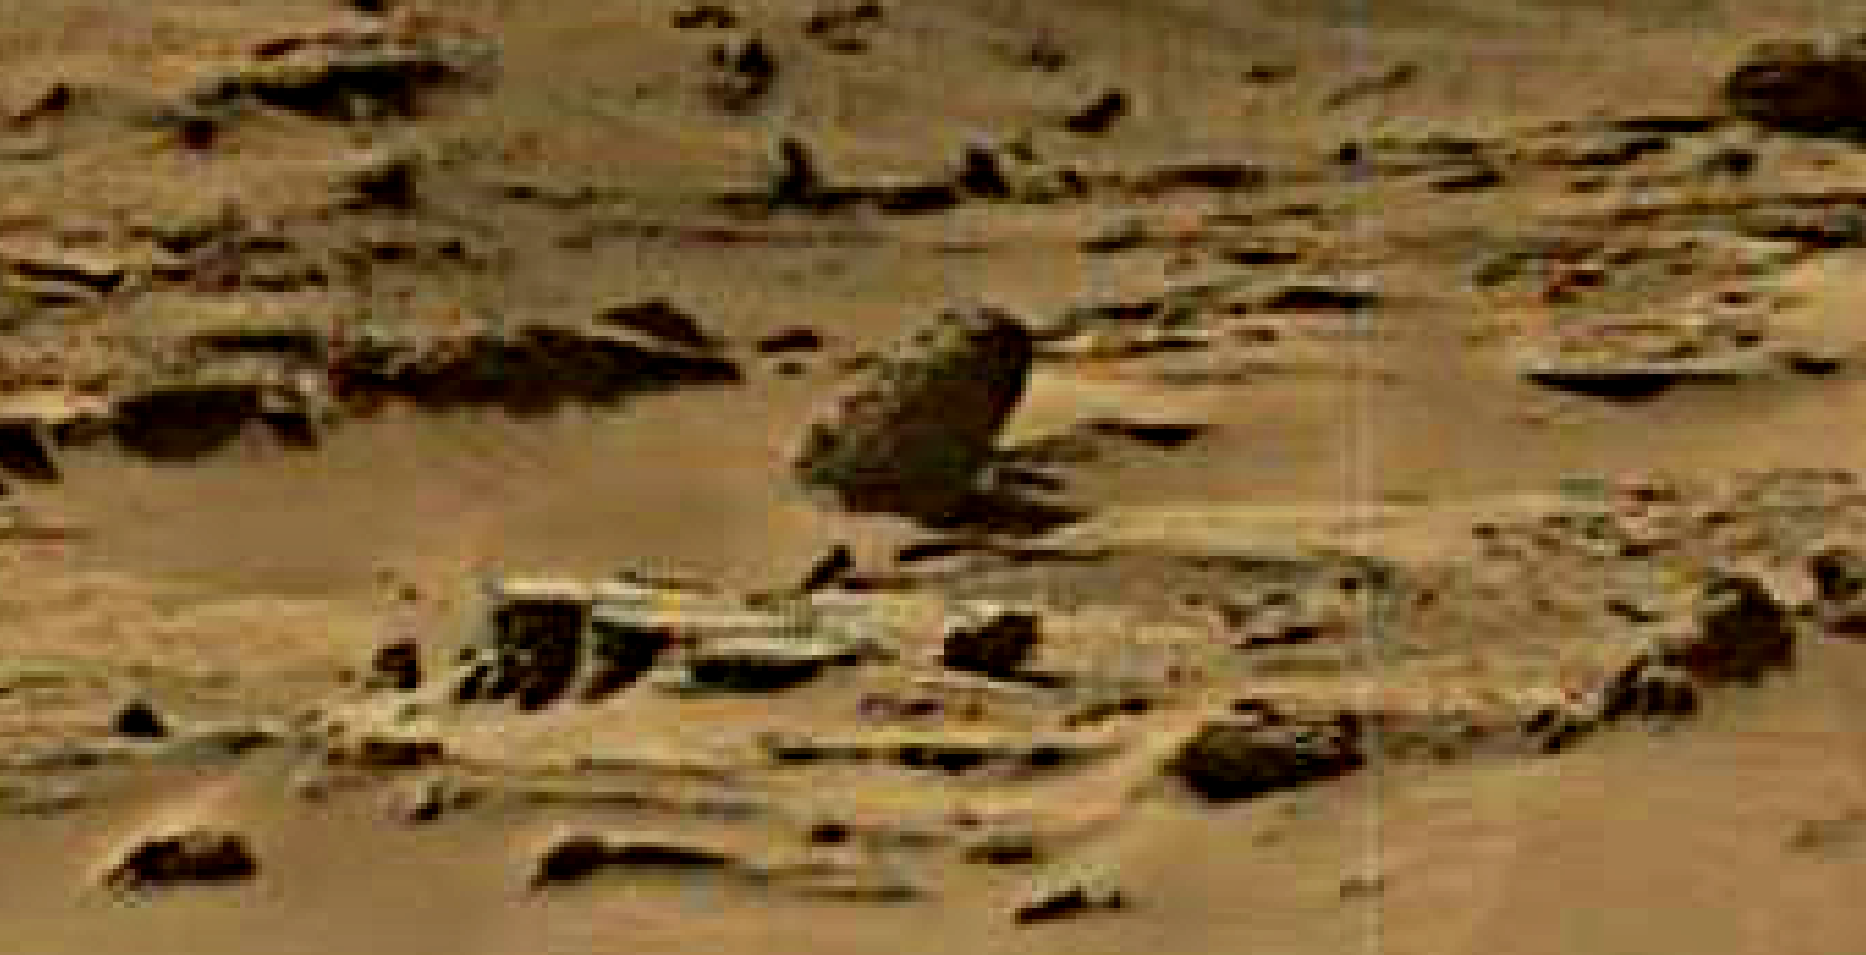 mars sol 1344 anomaly-artifacts 7 was life on mars